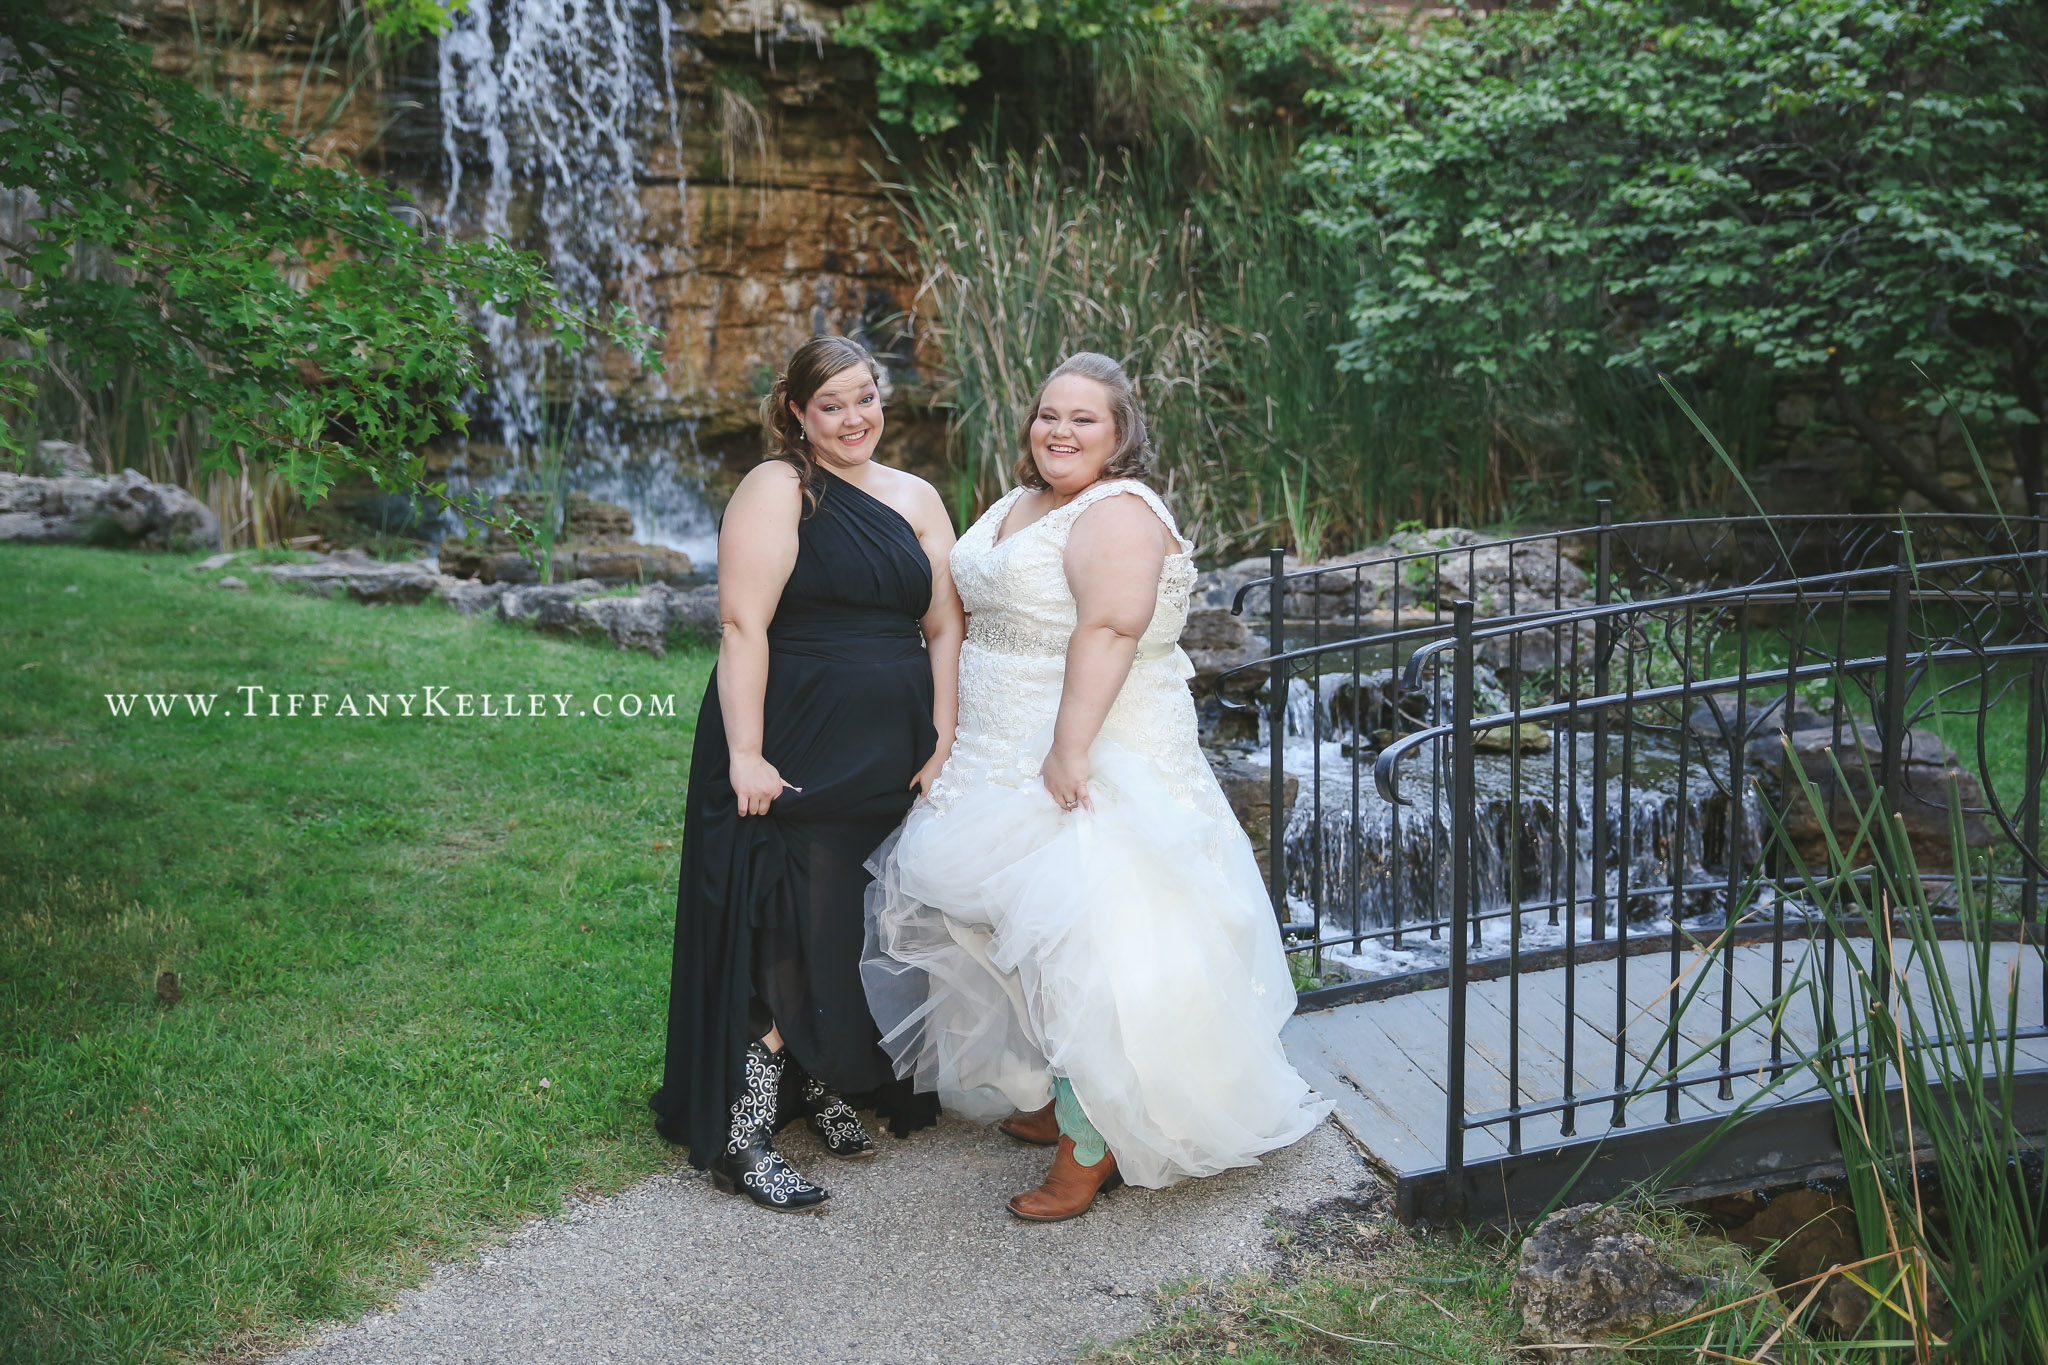 branson-missouri-big-cedar-lodge-wedding-photographer-tiffany-kelley-photography-09